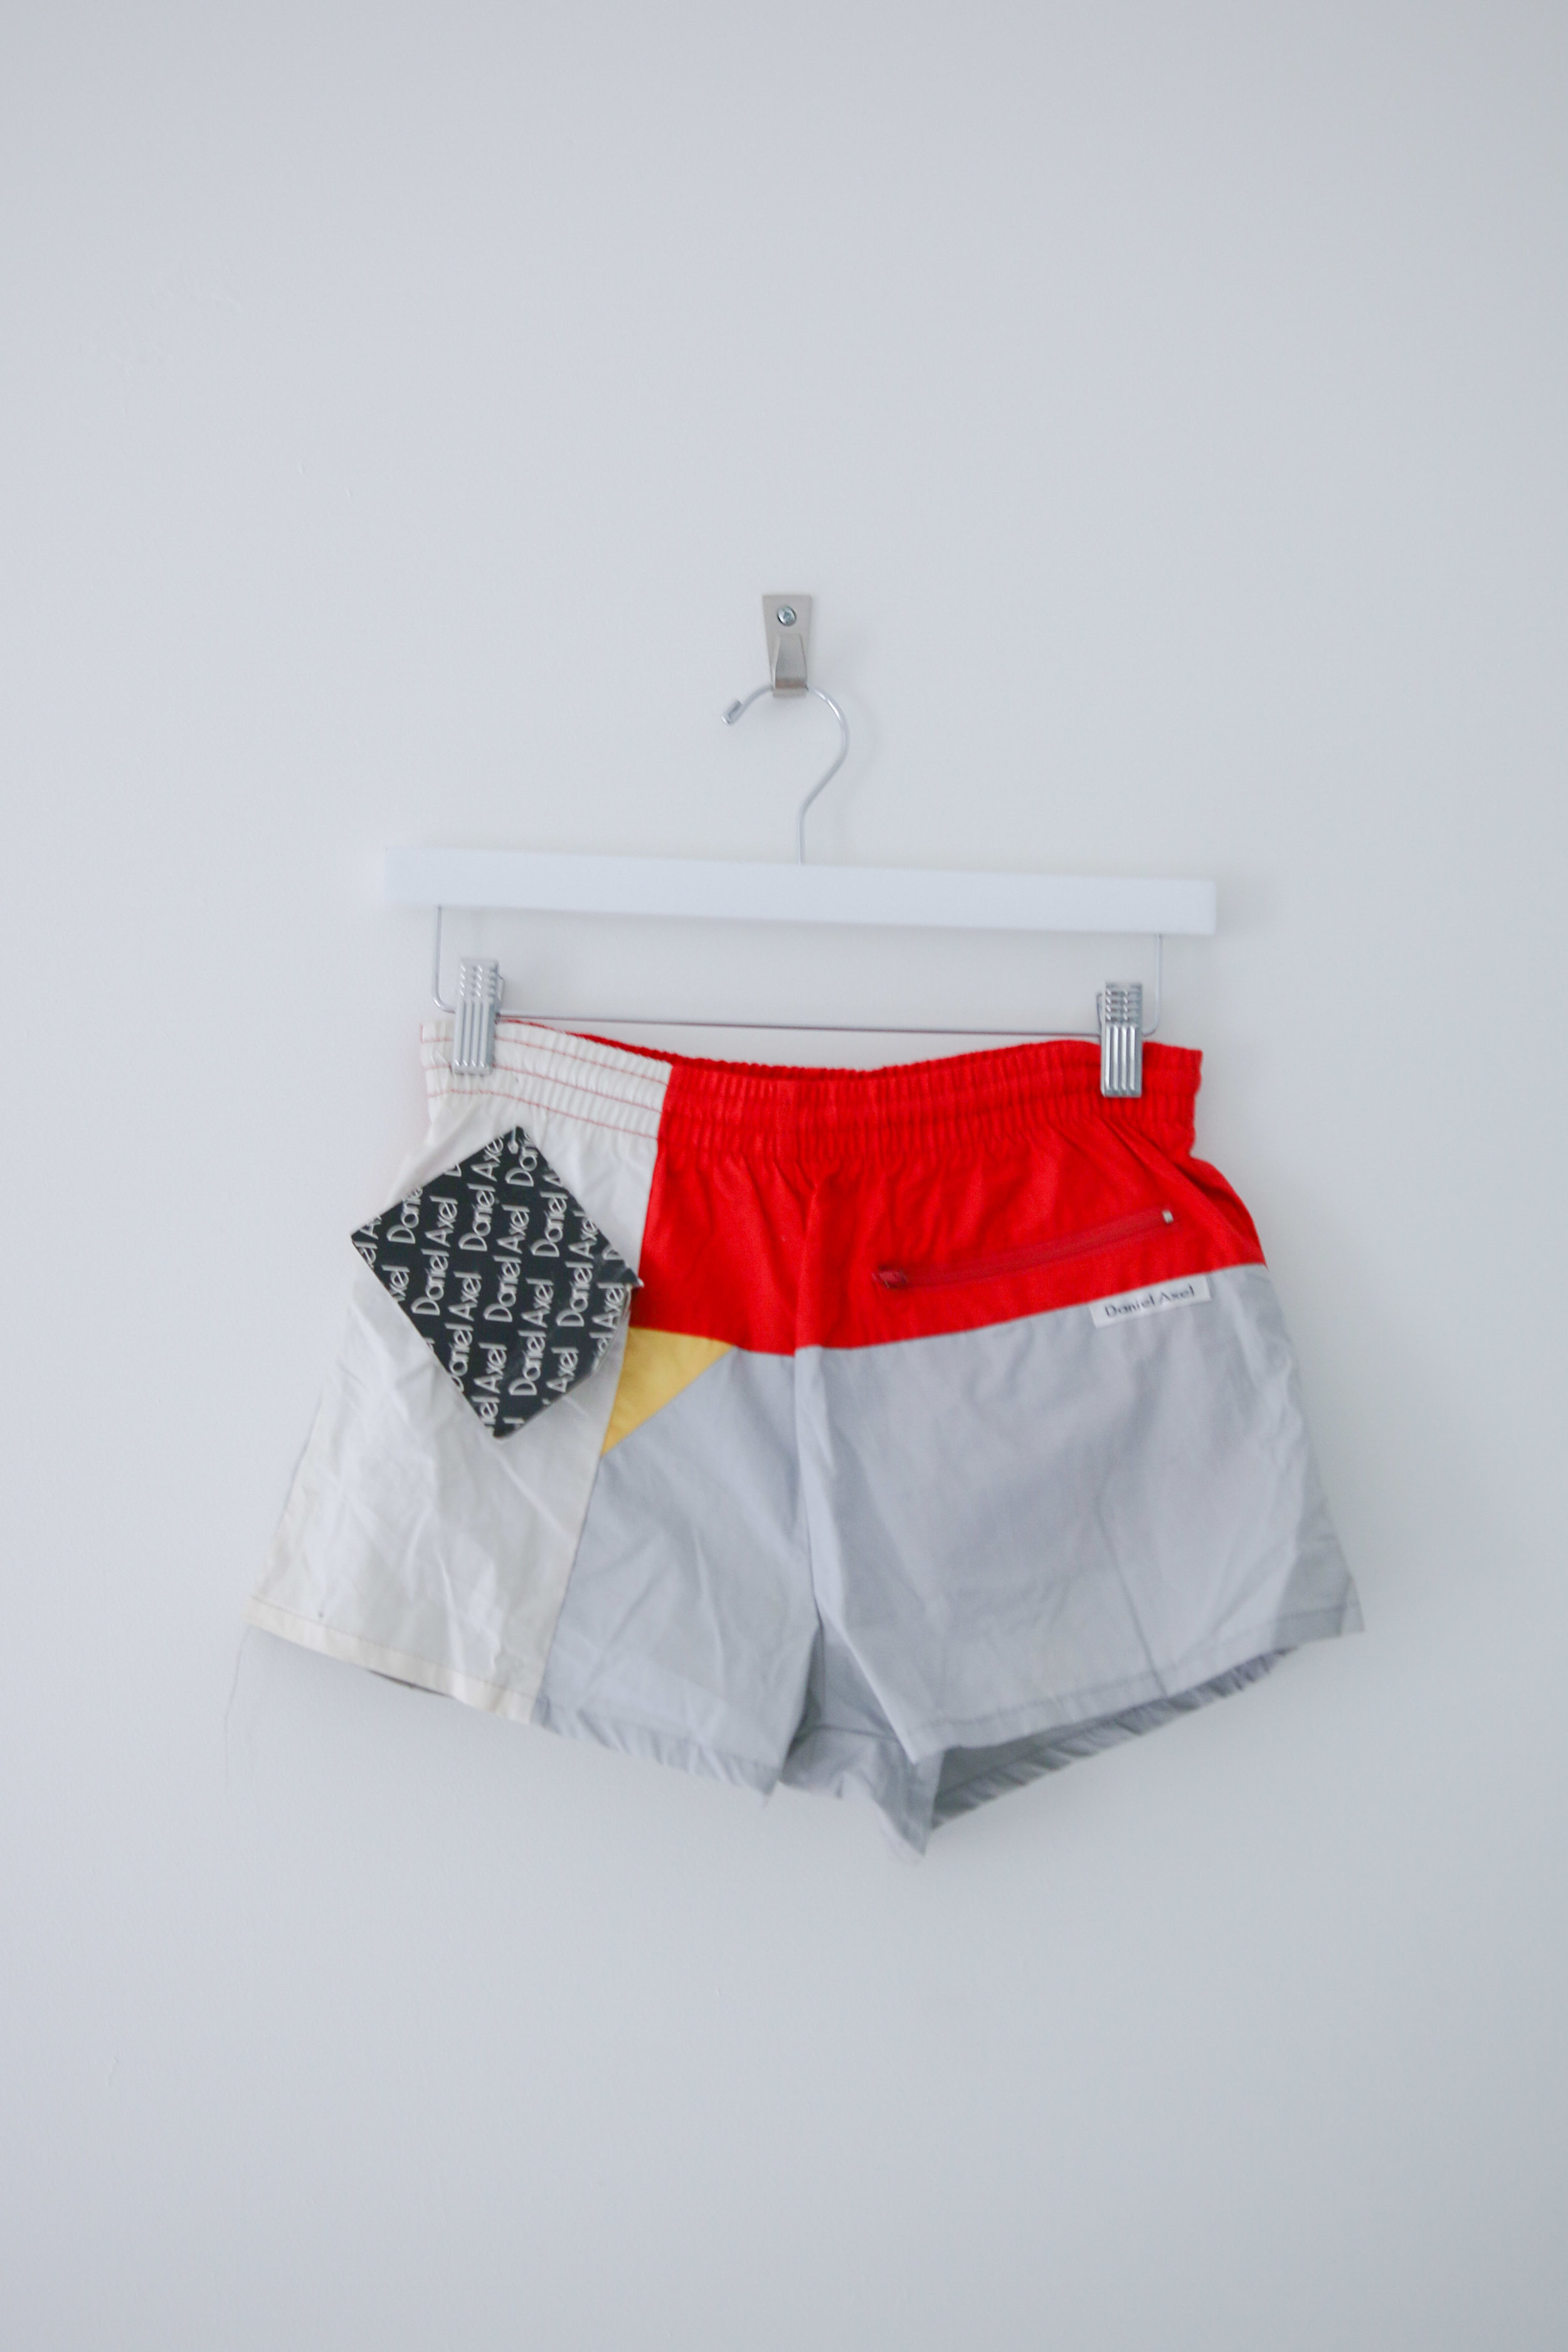 97b5da9672 XS - Daniel Deadstock Swim Shorts - White / Red / Yellow. TCP -  Online-8986.jpg